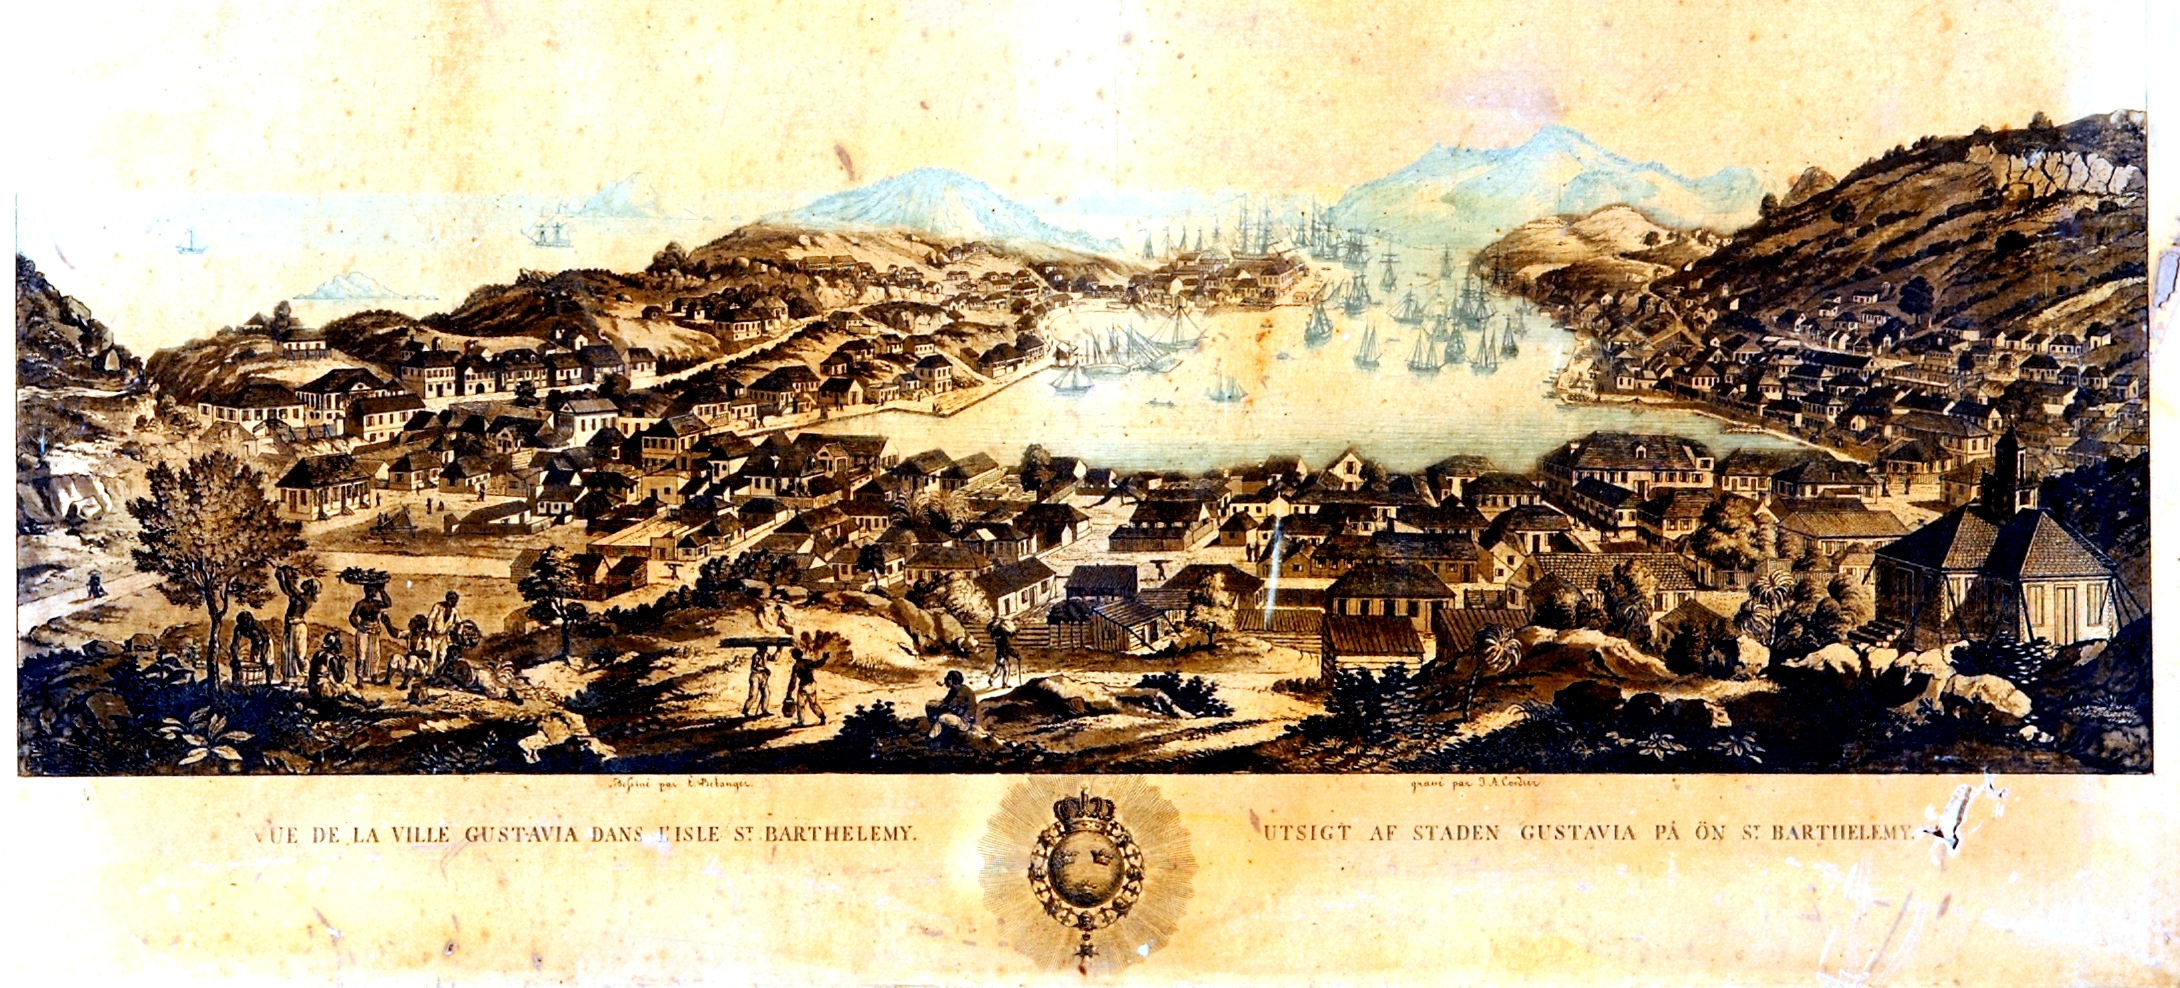 The view of the town Gustavia on the island of St. Barthelemy. Engraving by J. A. Cordier de Bonneville